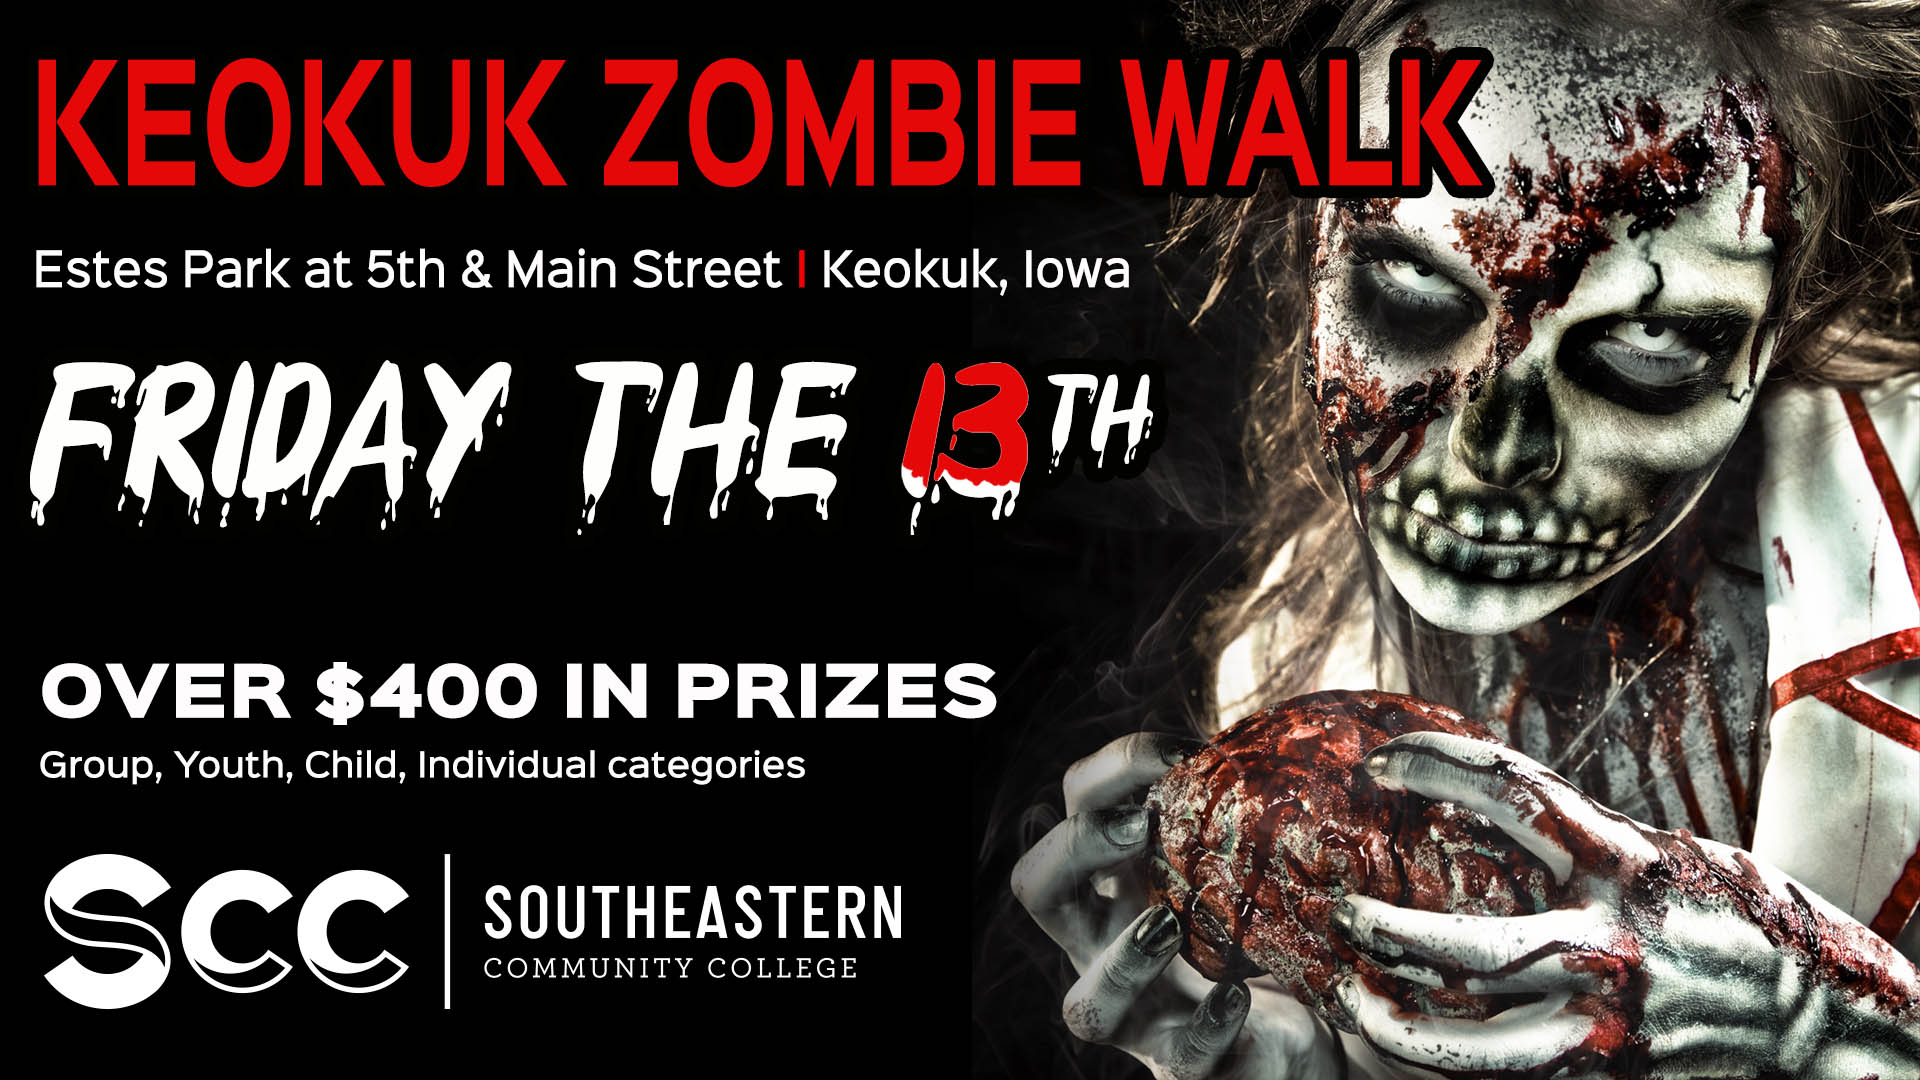 Come to the annual Zombie Walk